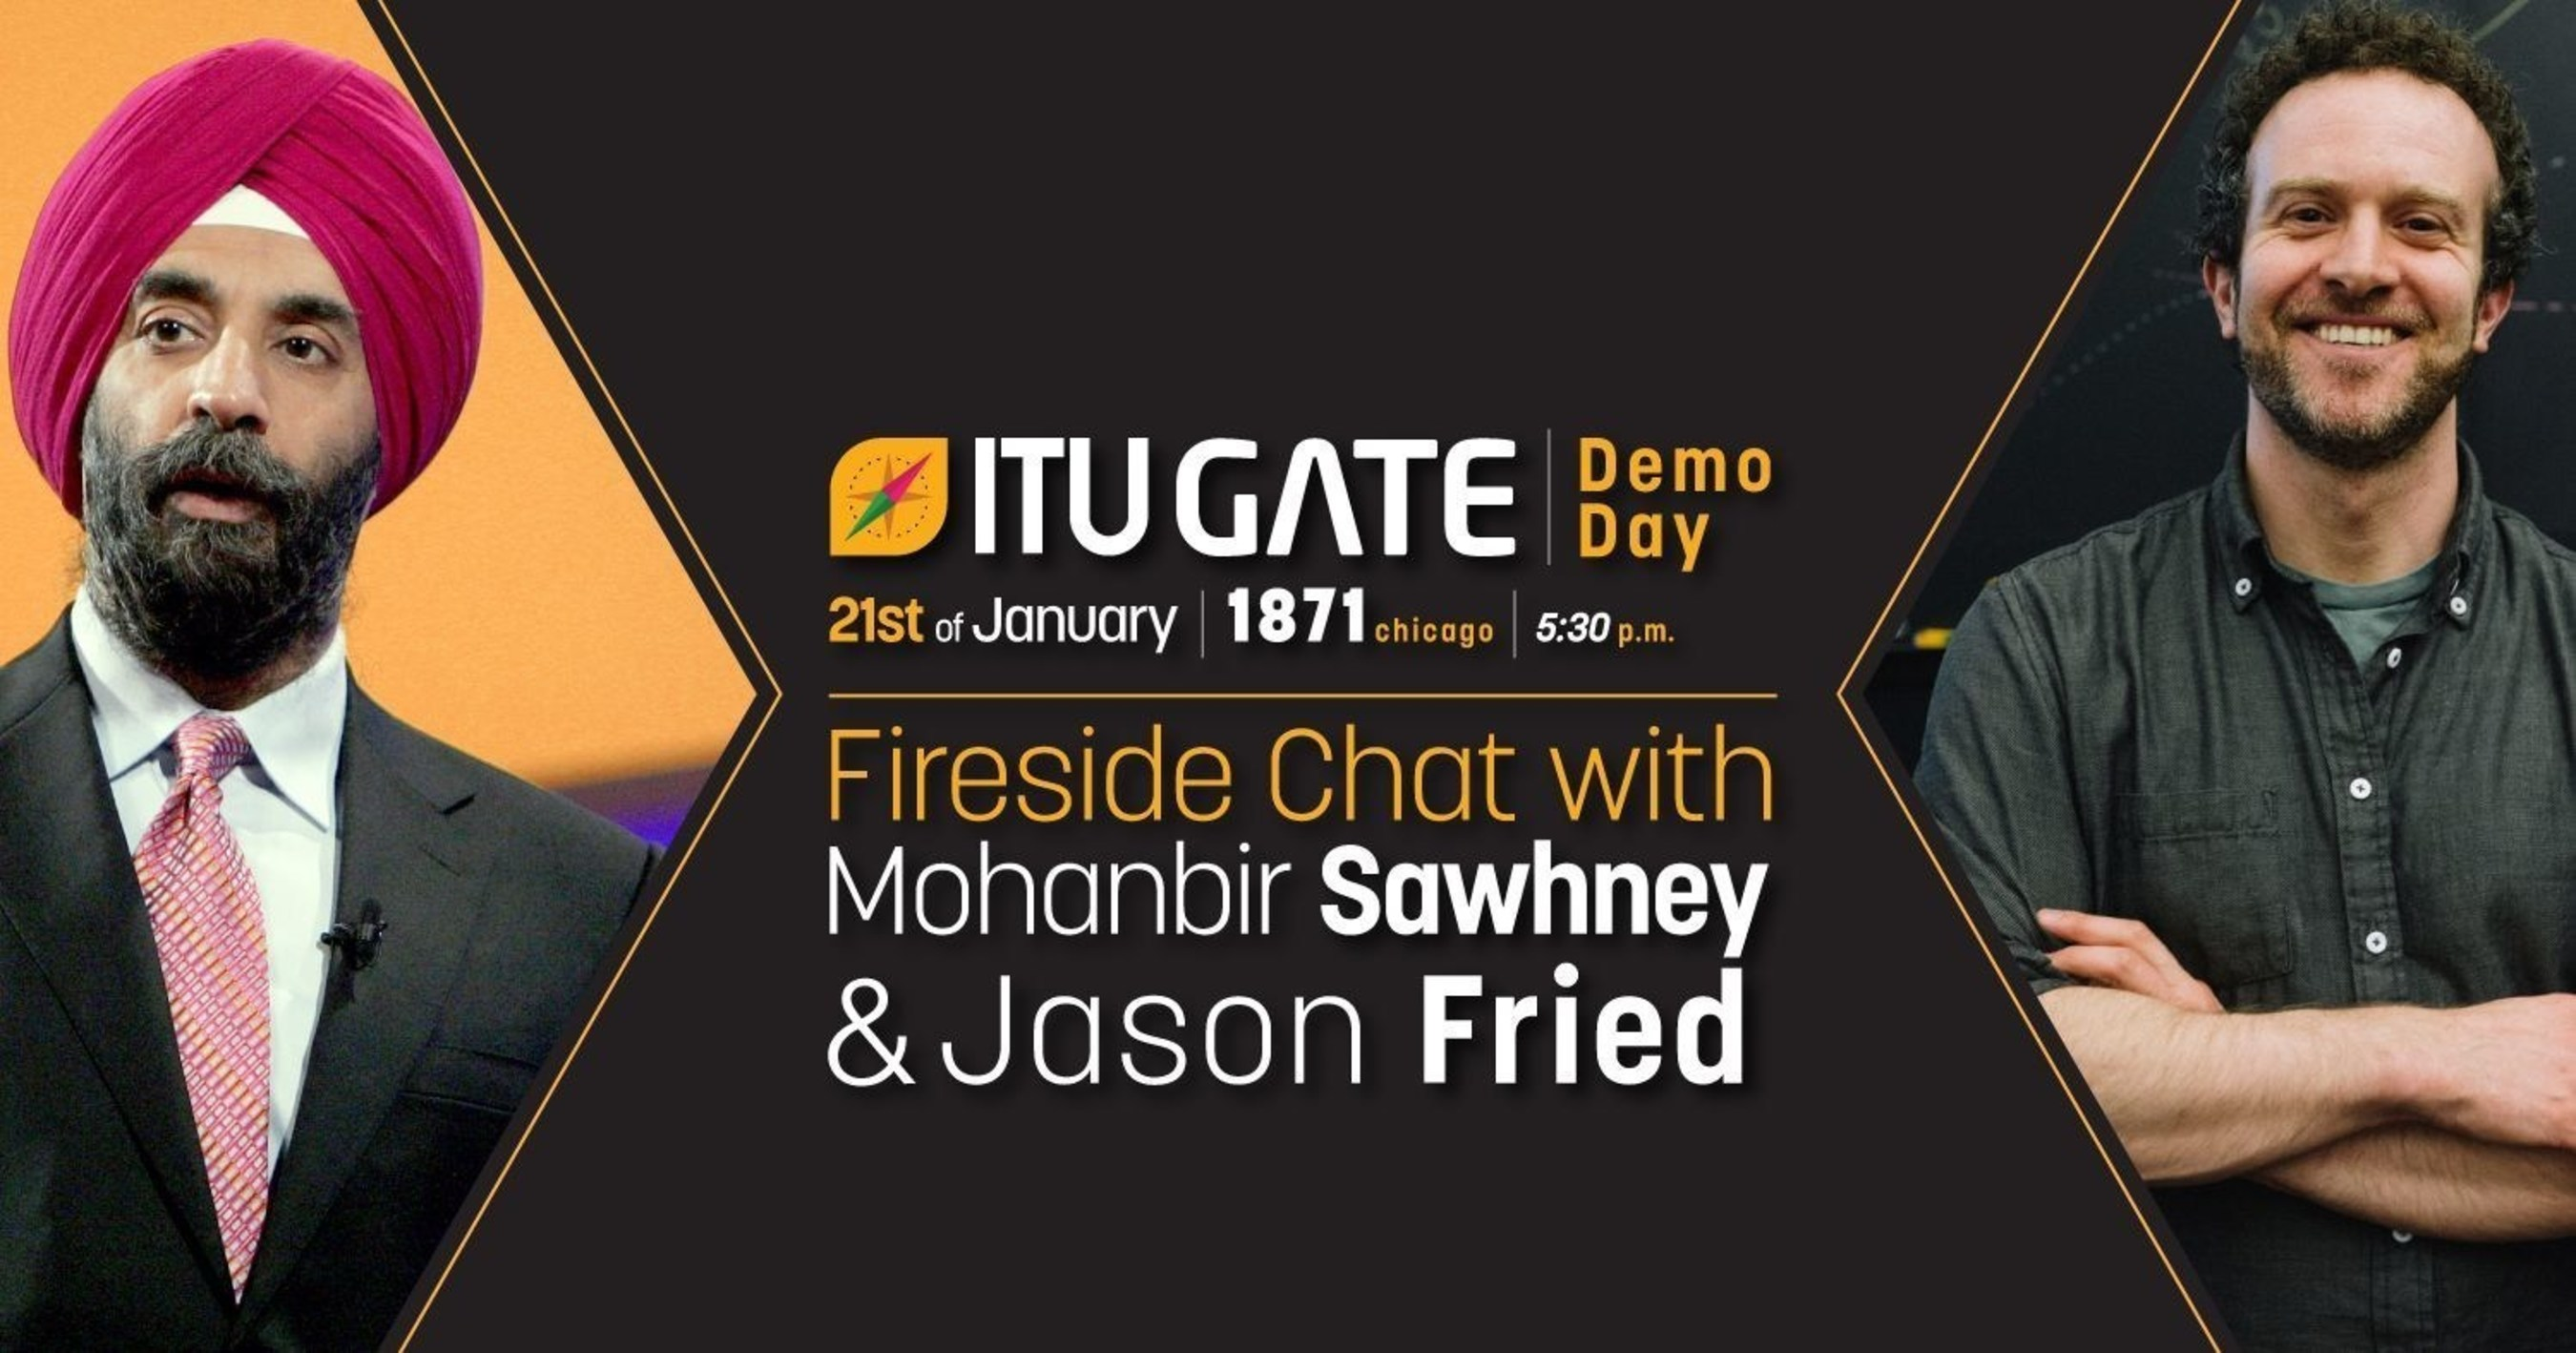 The speakers of the ITU GATE Demo Day Chicago will be Professor Mohanbir Sawhney from Kellogg School of Management and Founder & CEO of Basecamp Jason Fried at 1871 Chicago on 21st of January.